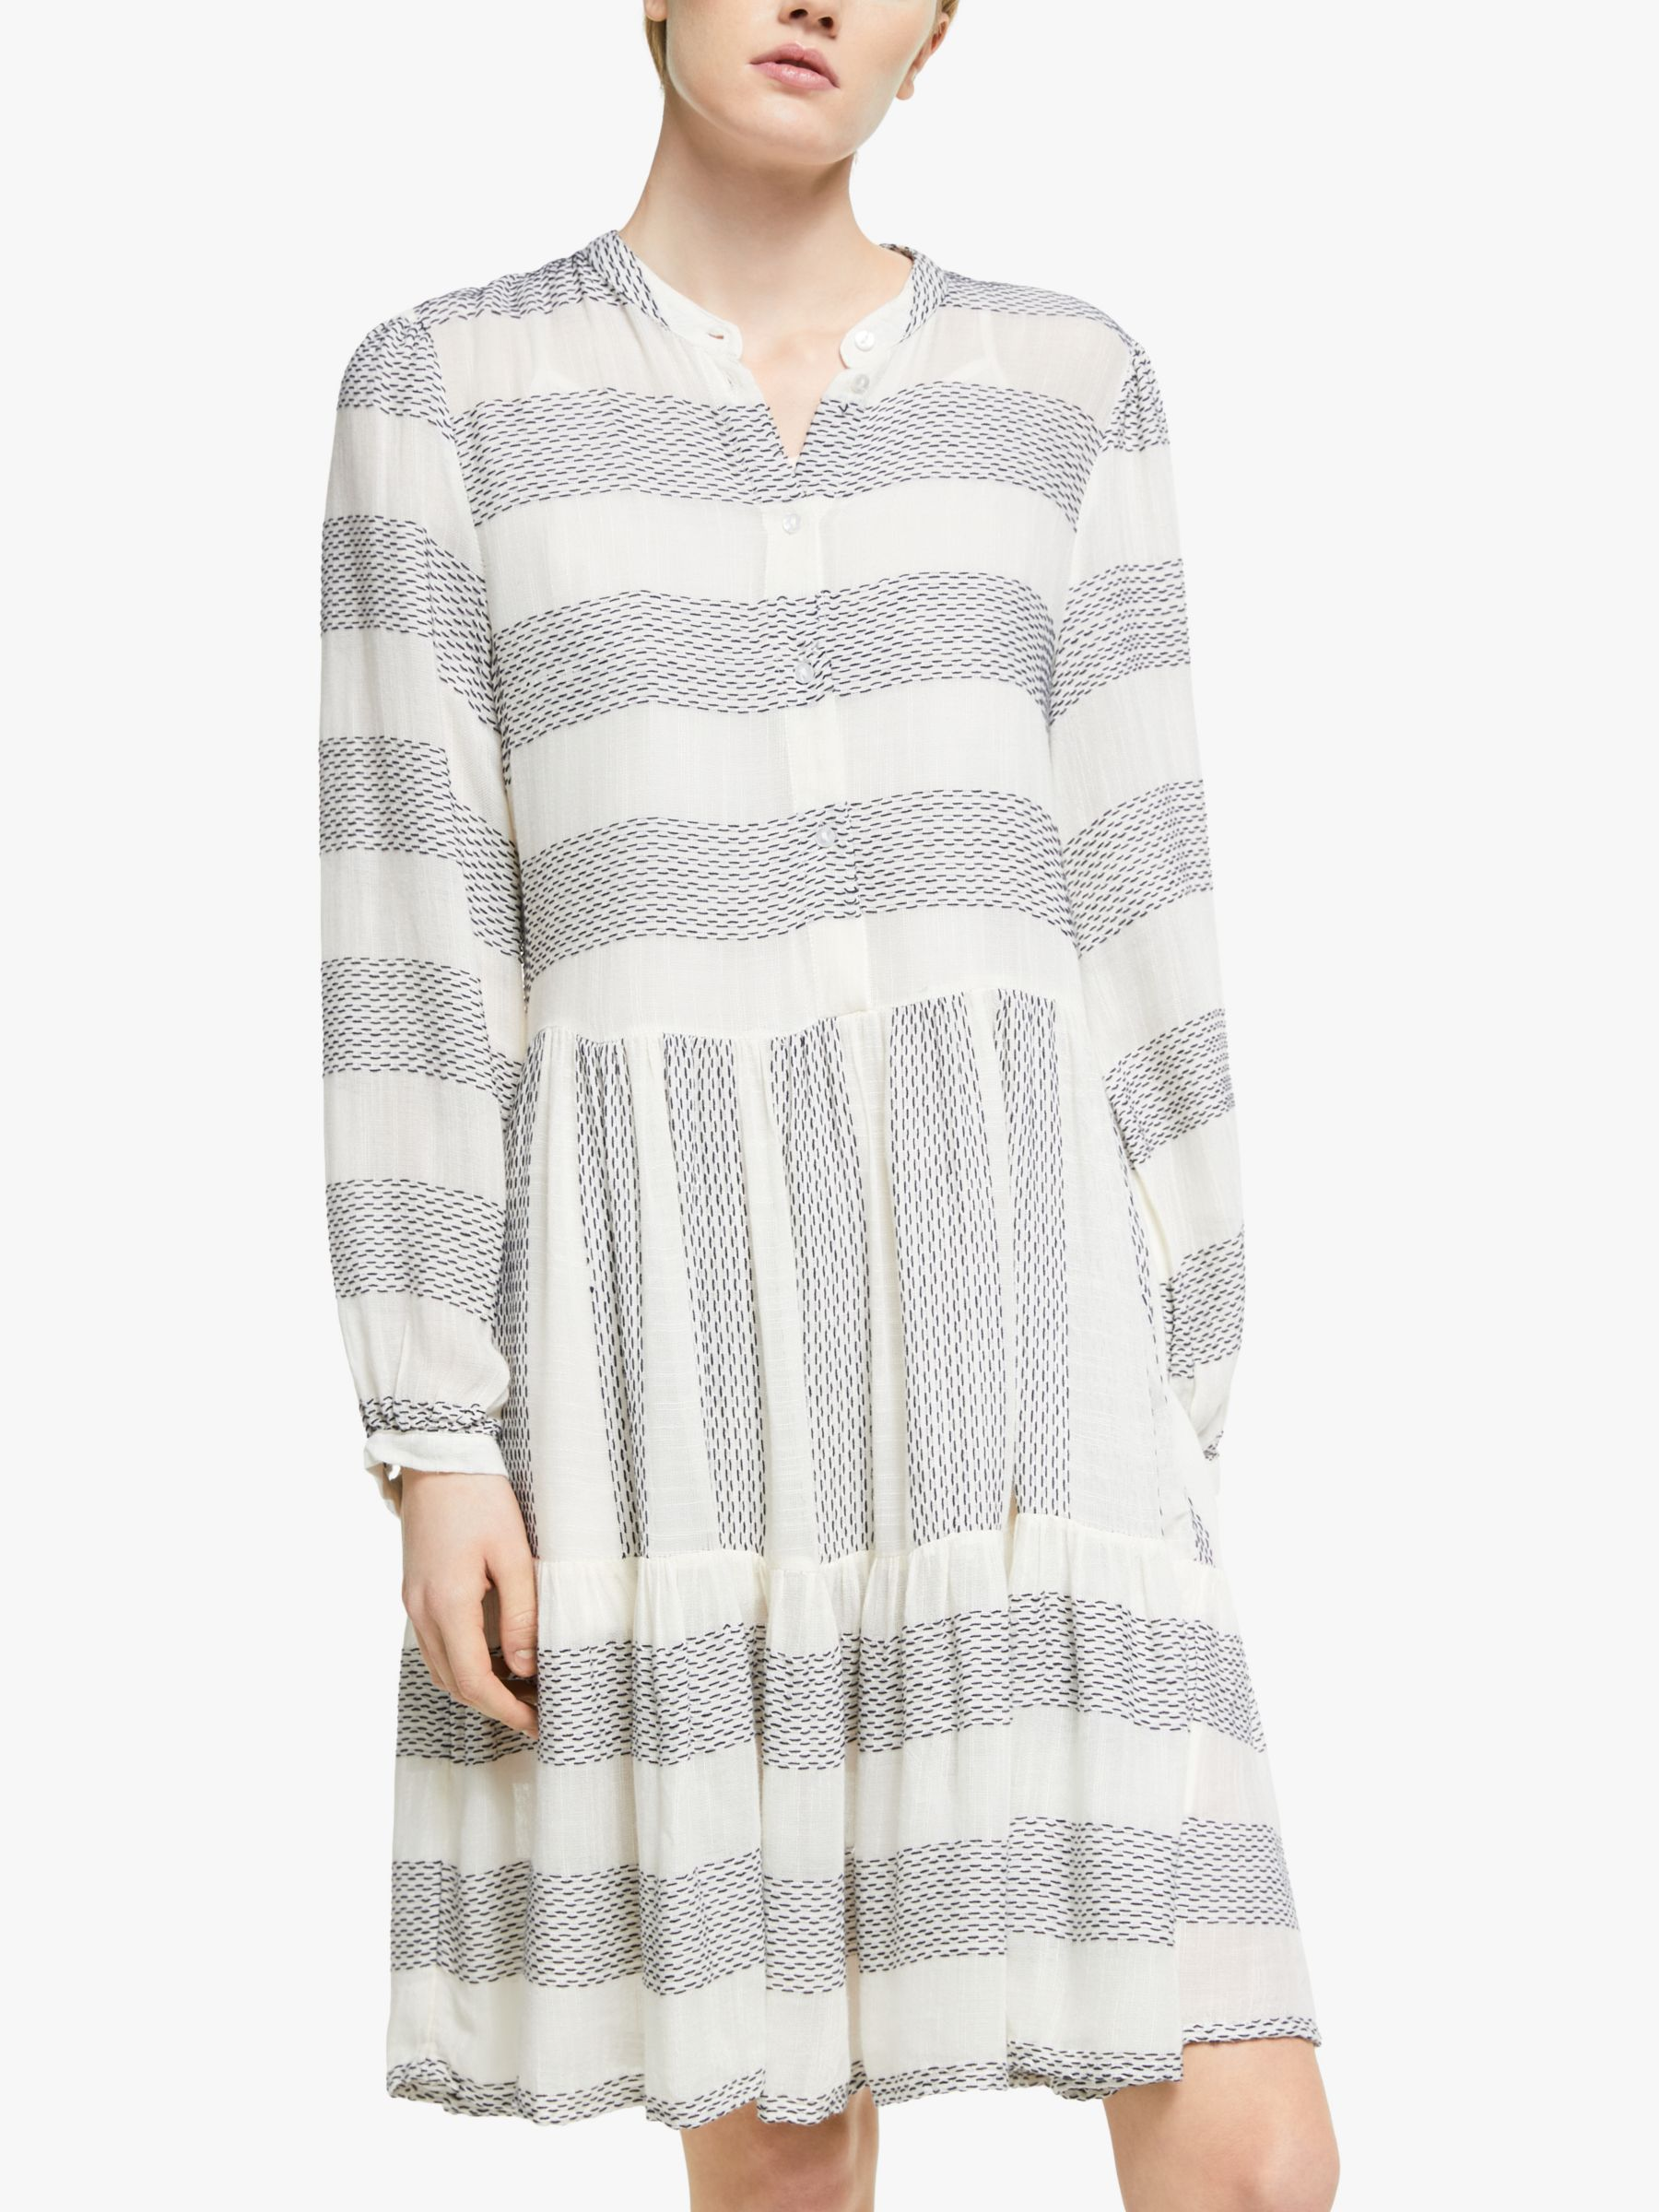 Numph Numph Yaslamali Stripe Shirt Dress, Eggnog